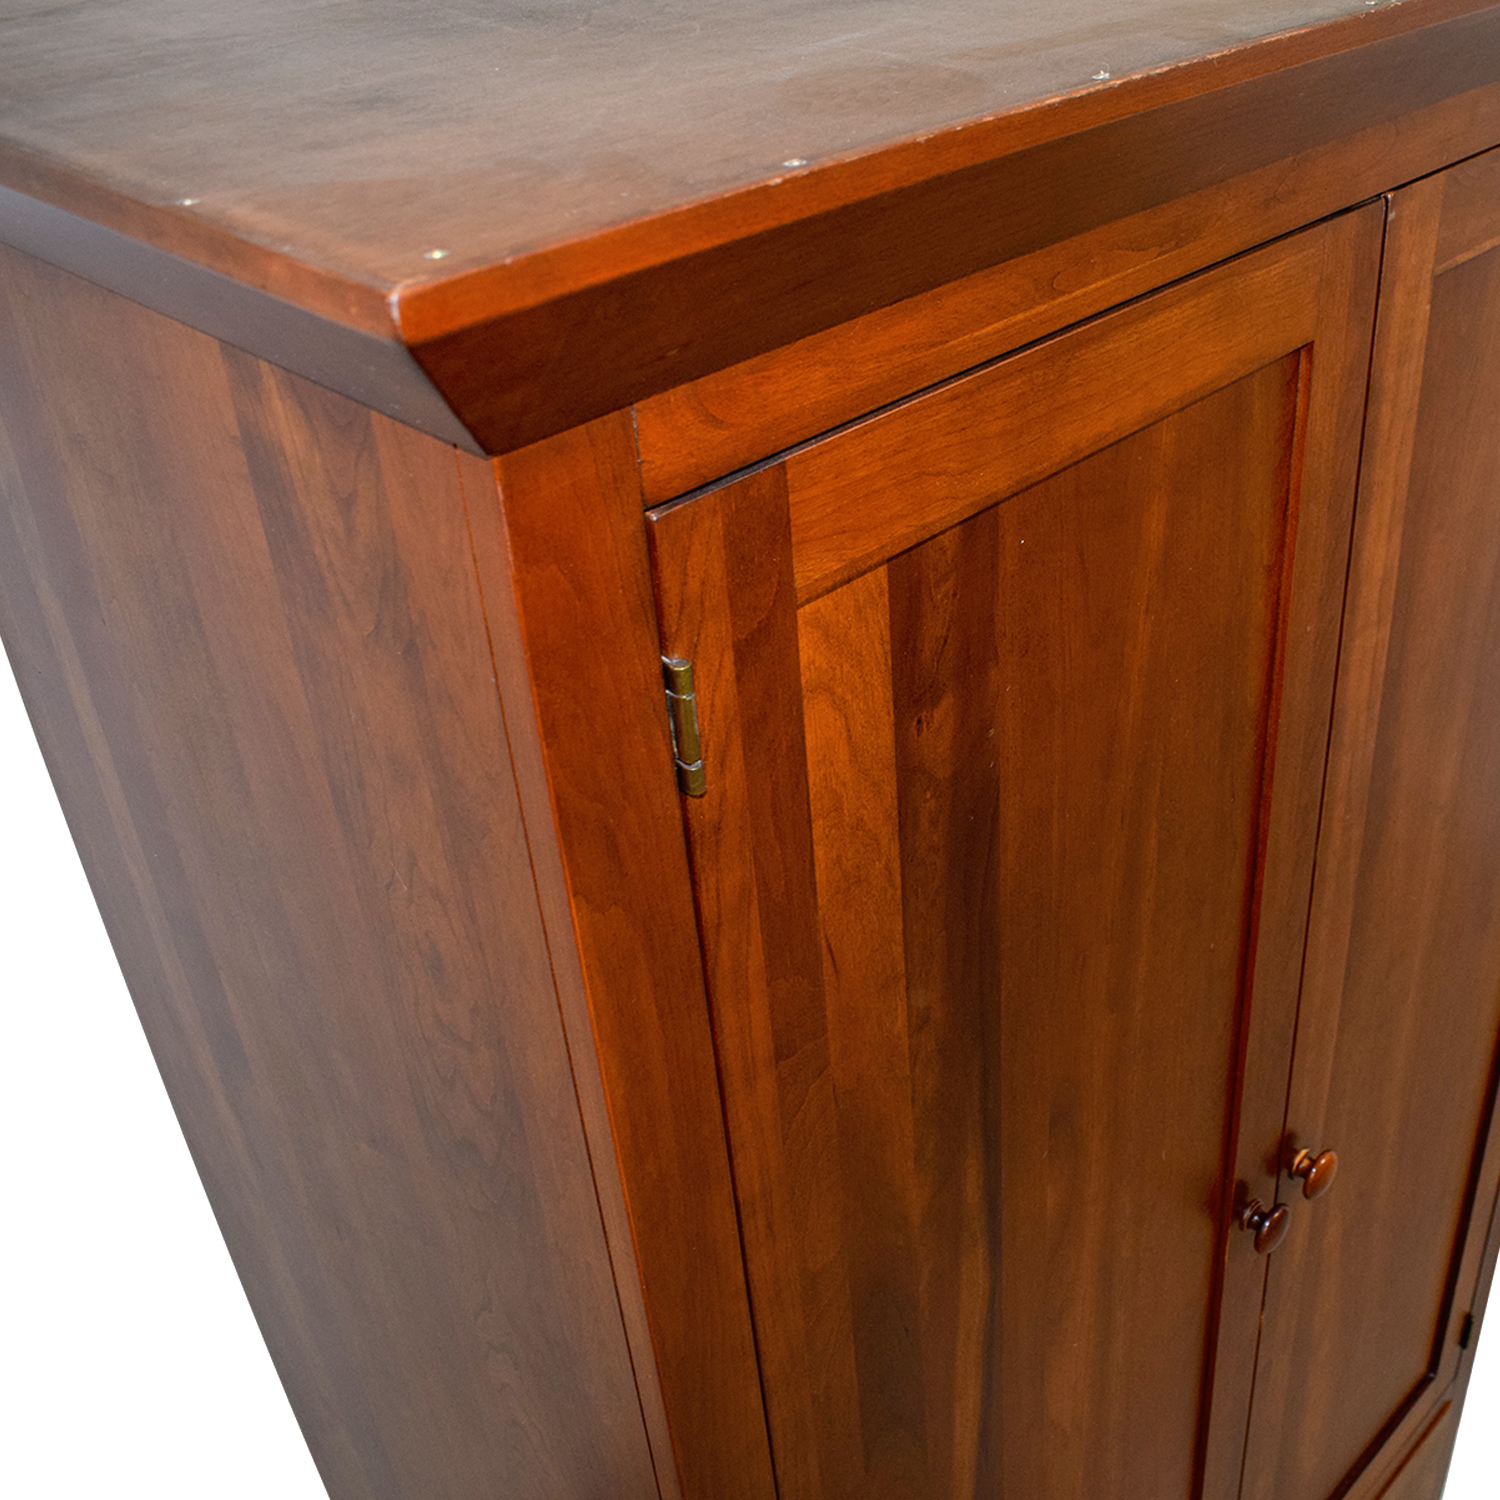 Ethan Allen Ethan Allen Wood Five-Drawer Armoire second hand